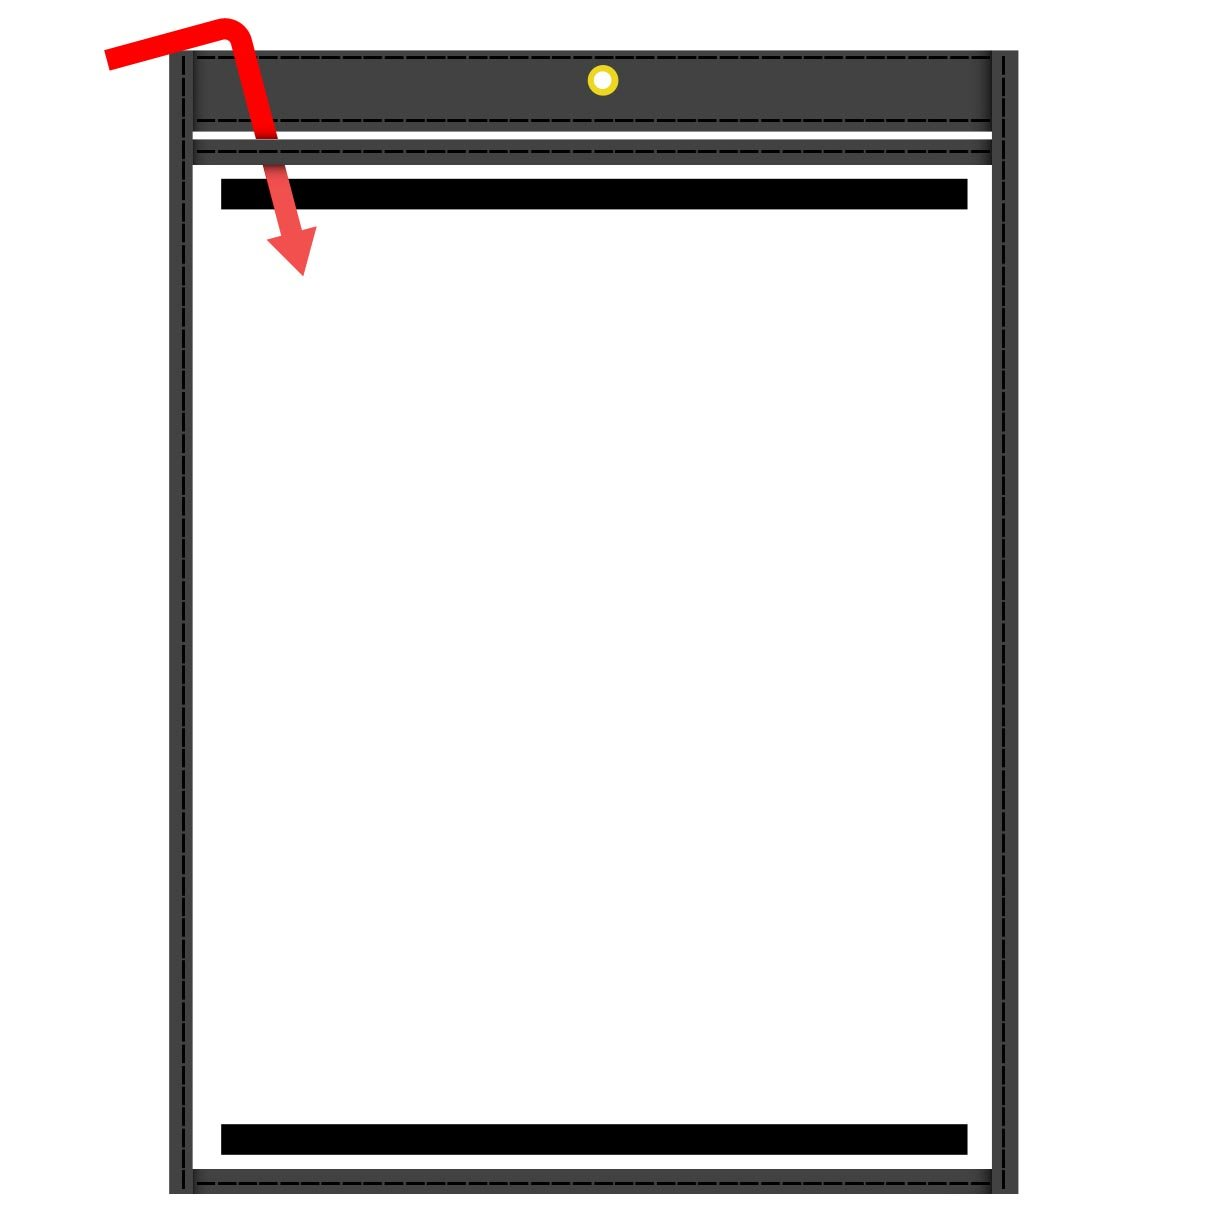 StoreSMART - Magnetic Rigid-Vinyl Sewn Pocket - Black - 9 x 12 inches - 10-Pack - Open on The Short Side - for Refrigerator or Locker -T85726SBKM-10 by STORE SMART